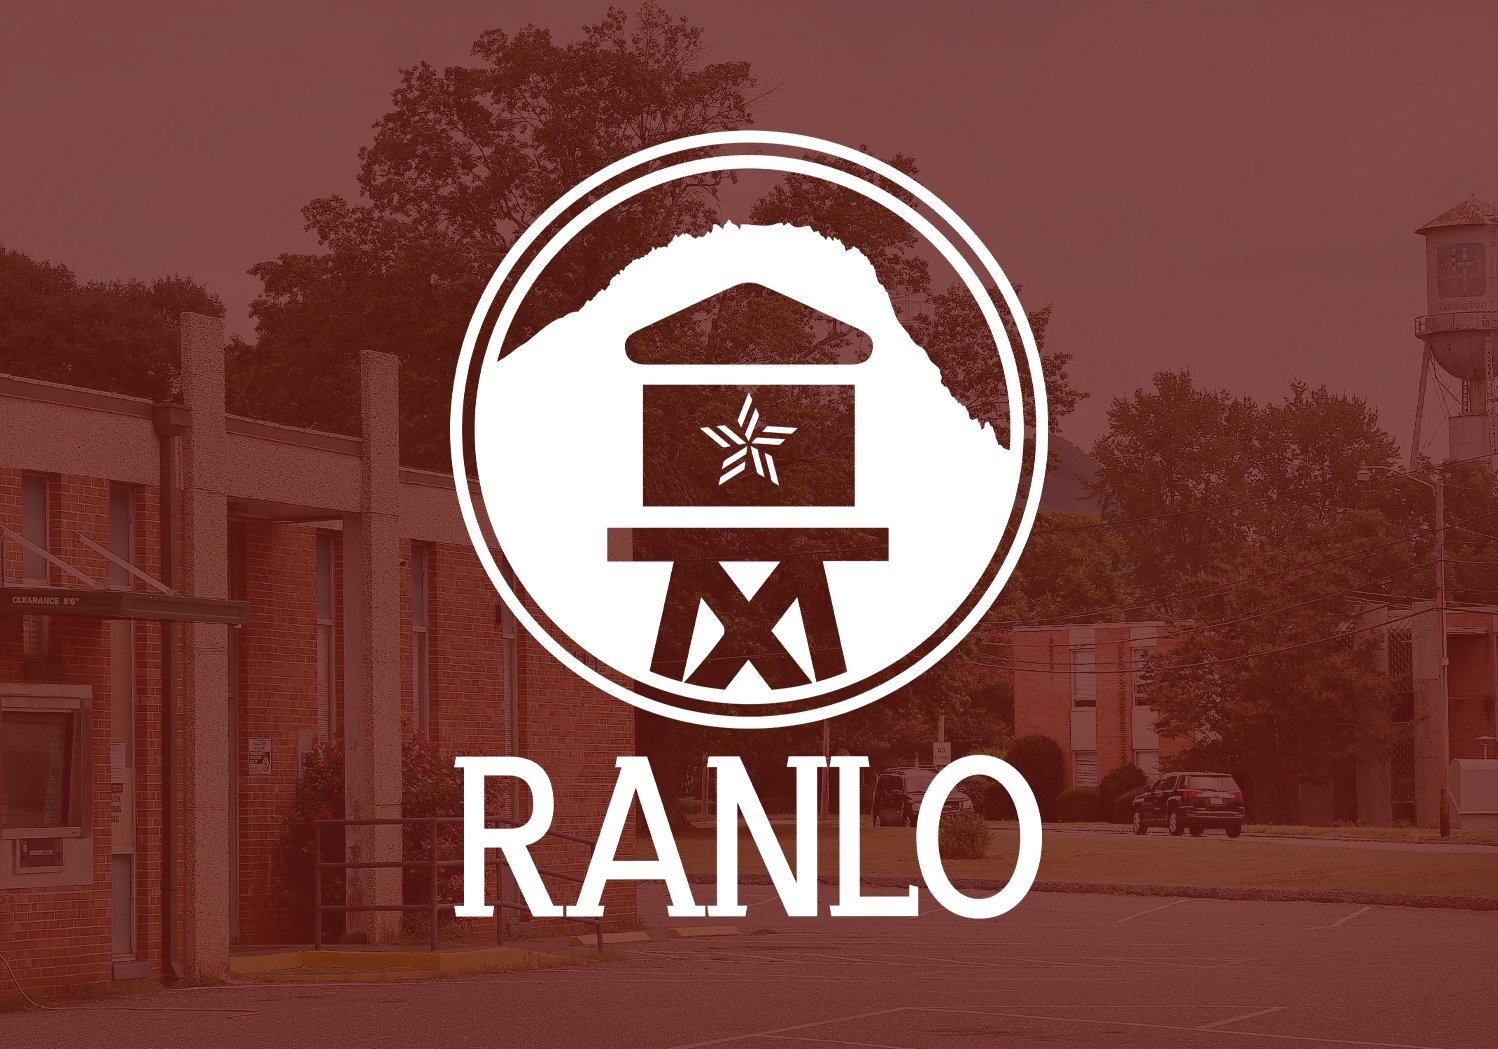 Town of Ranlo